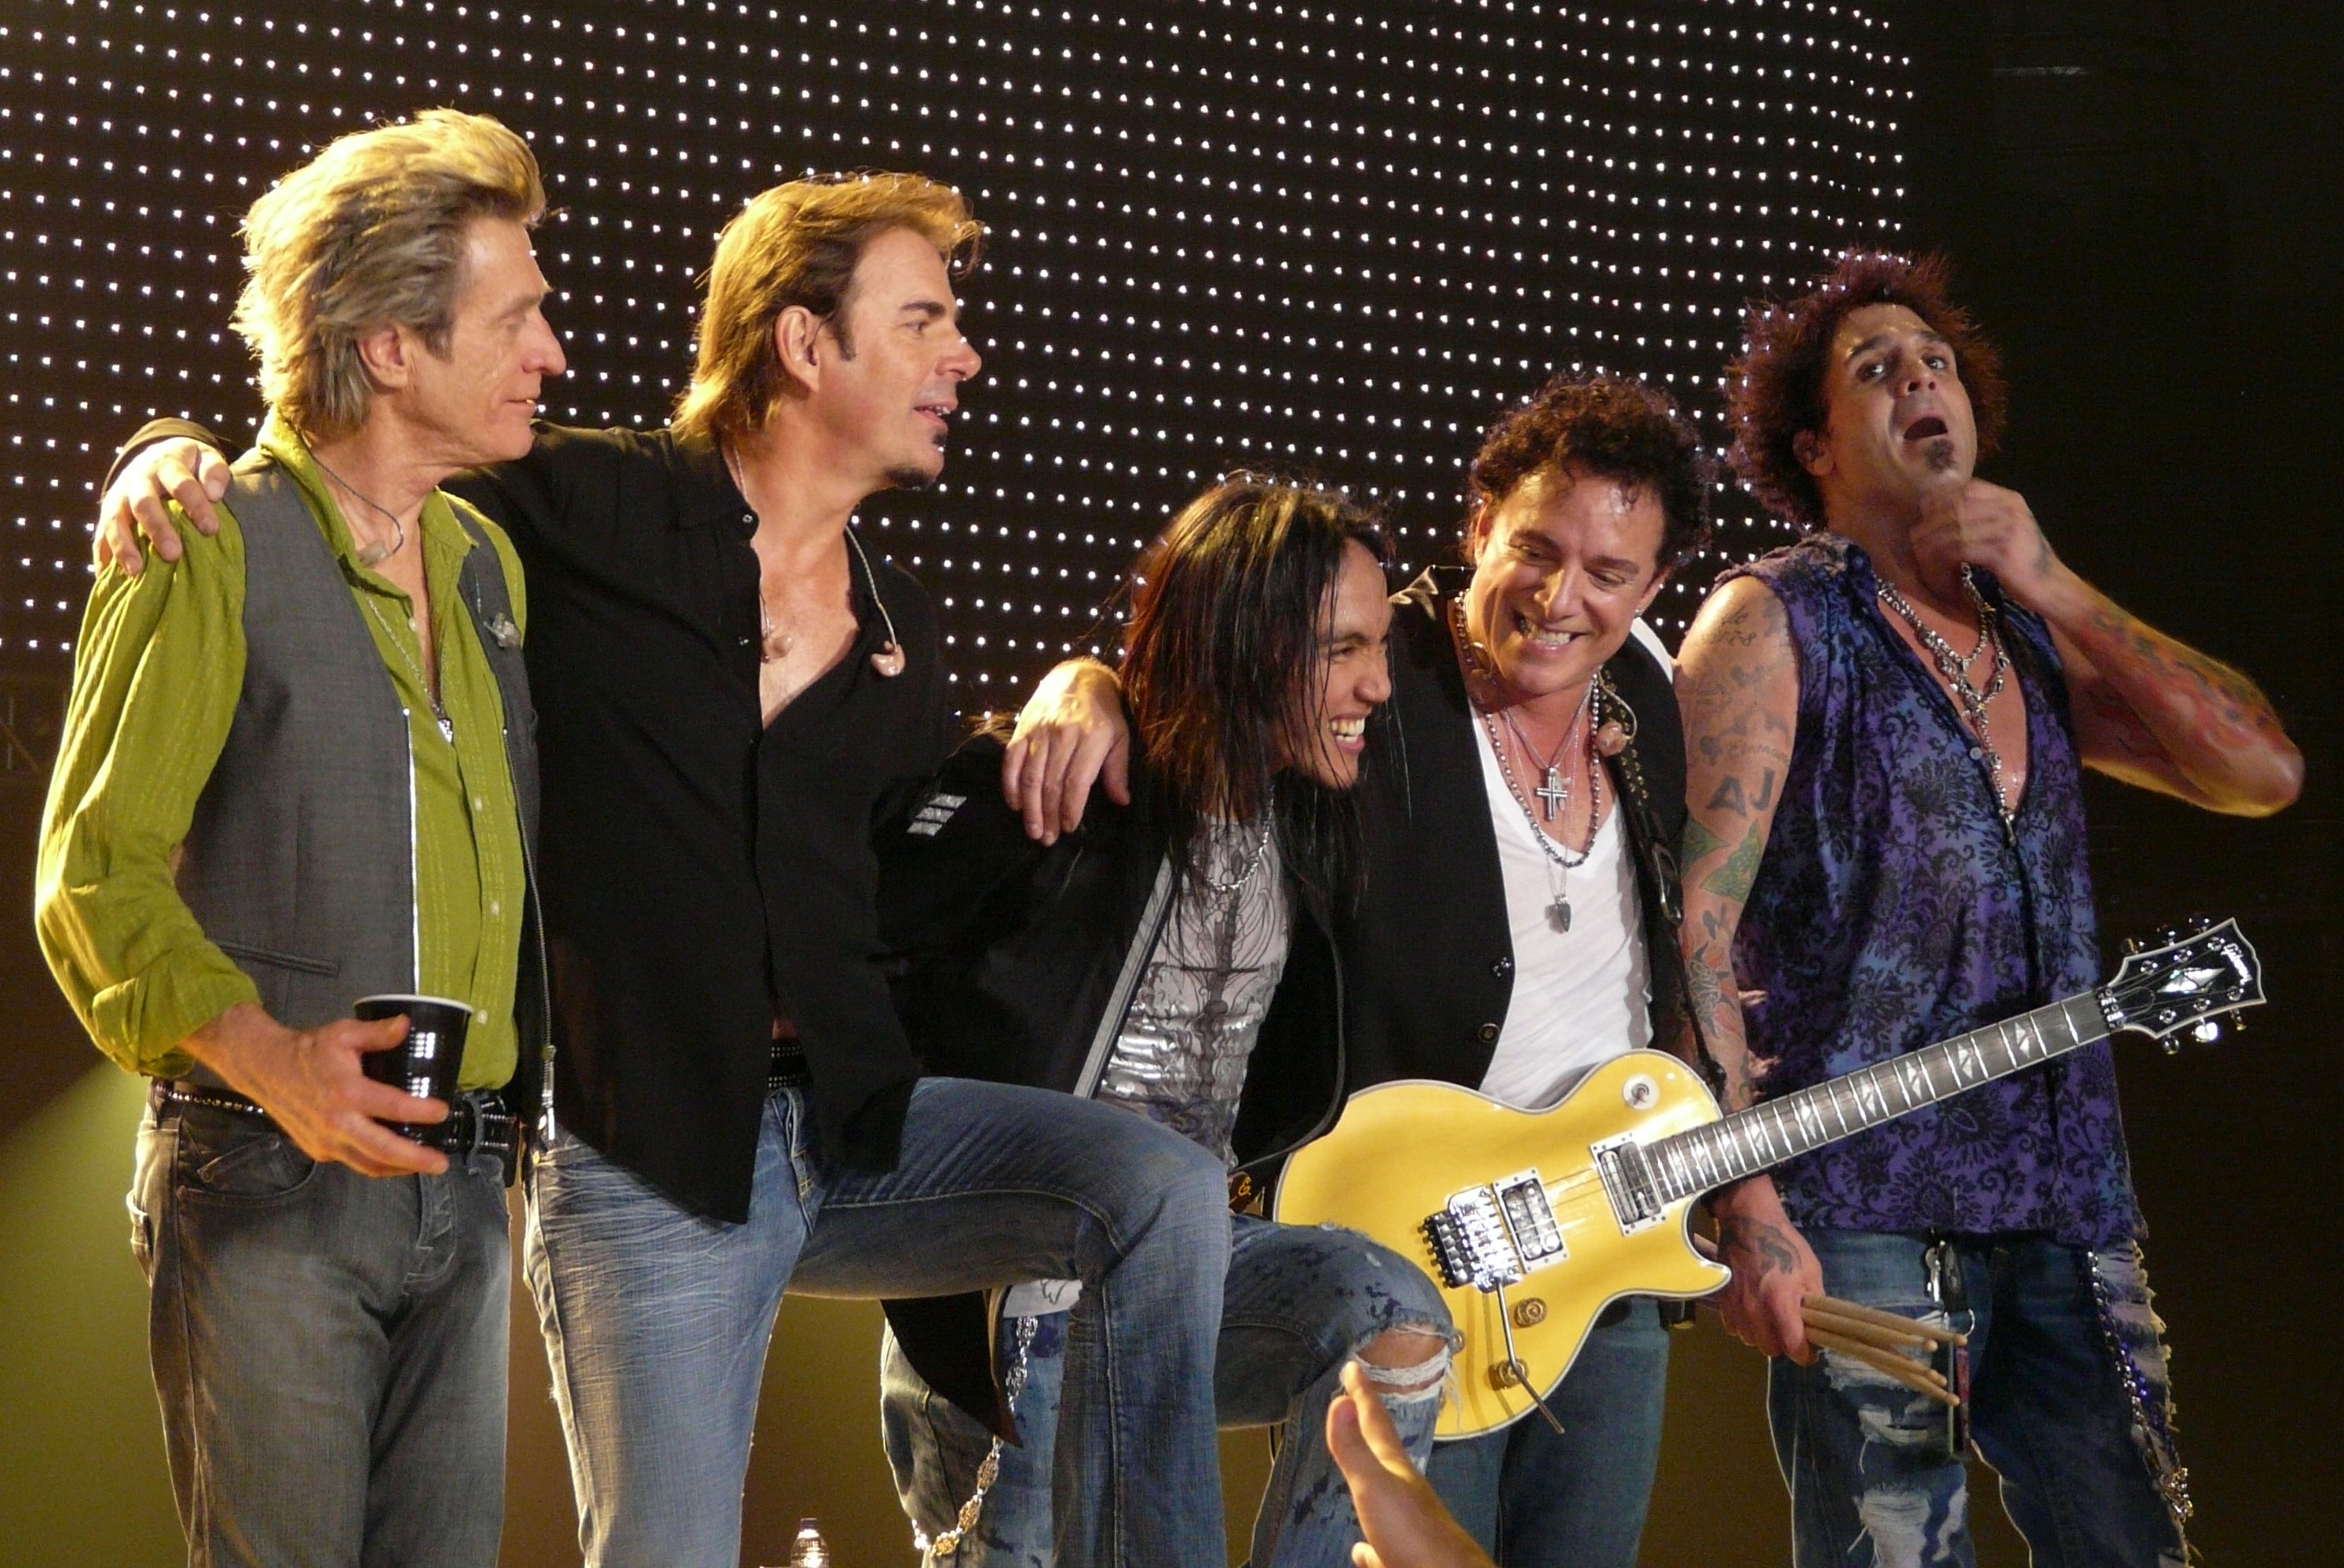 journey band asian tour jpg 1500x1000